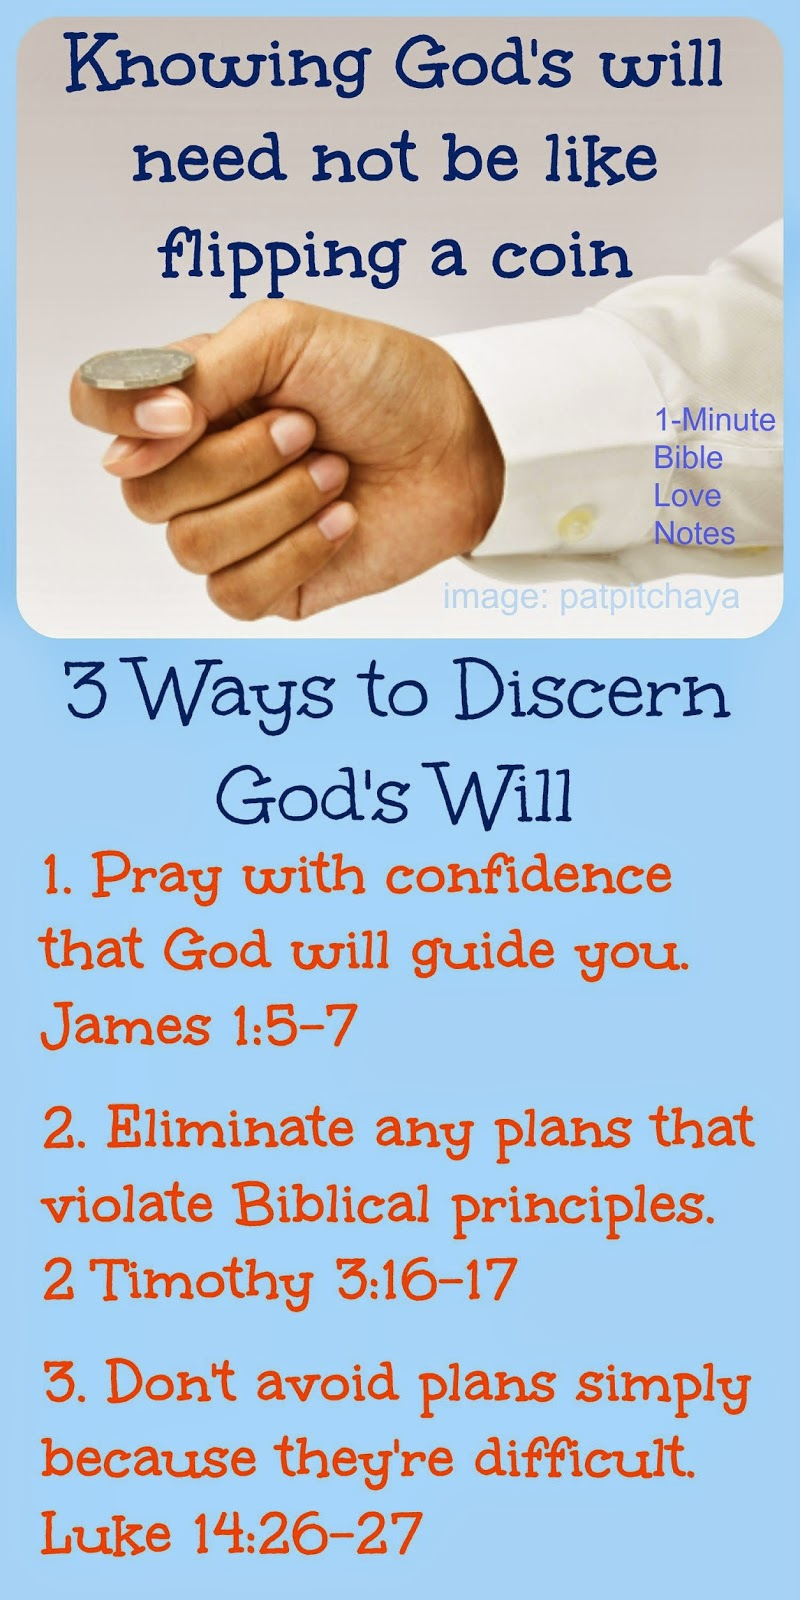 discerning God's will, 3 biblical principles for knowing God's will